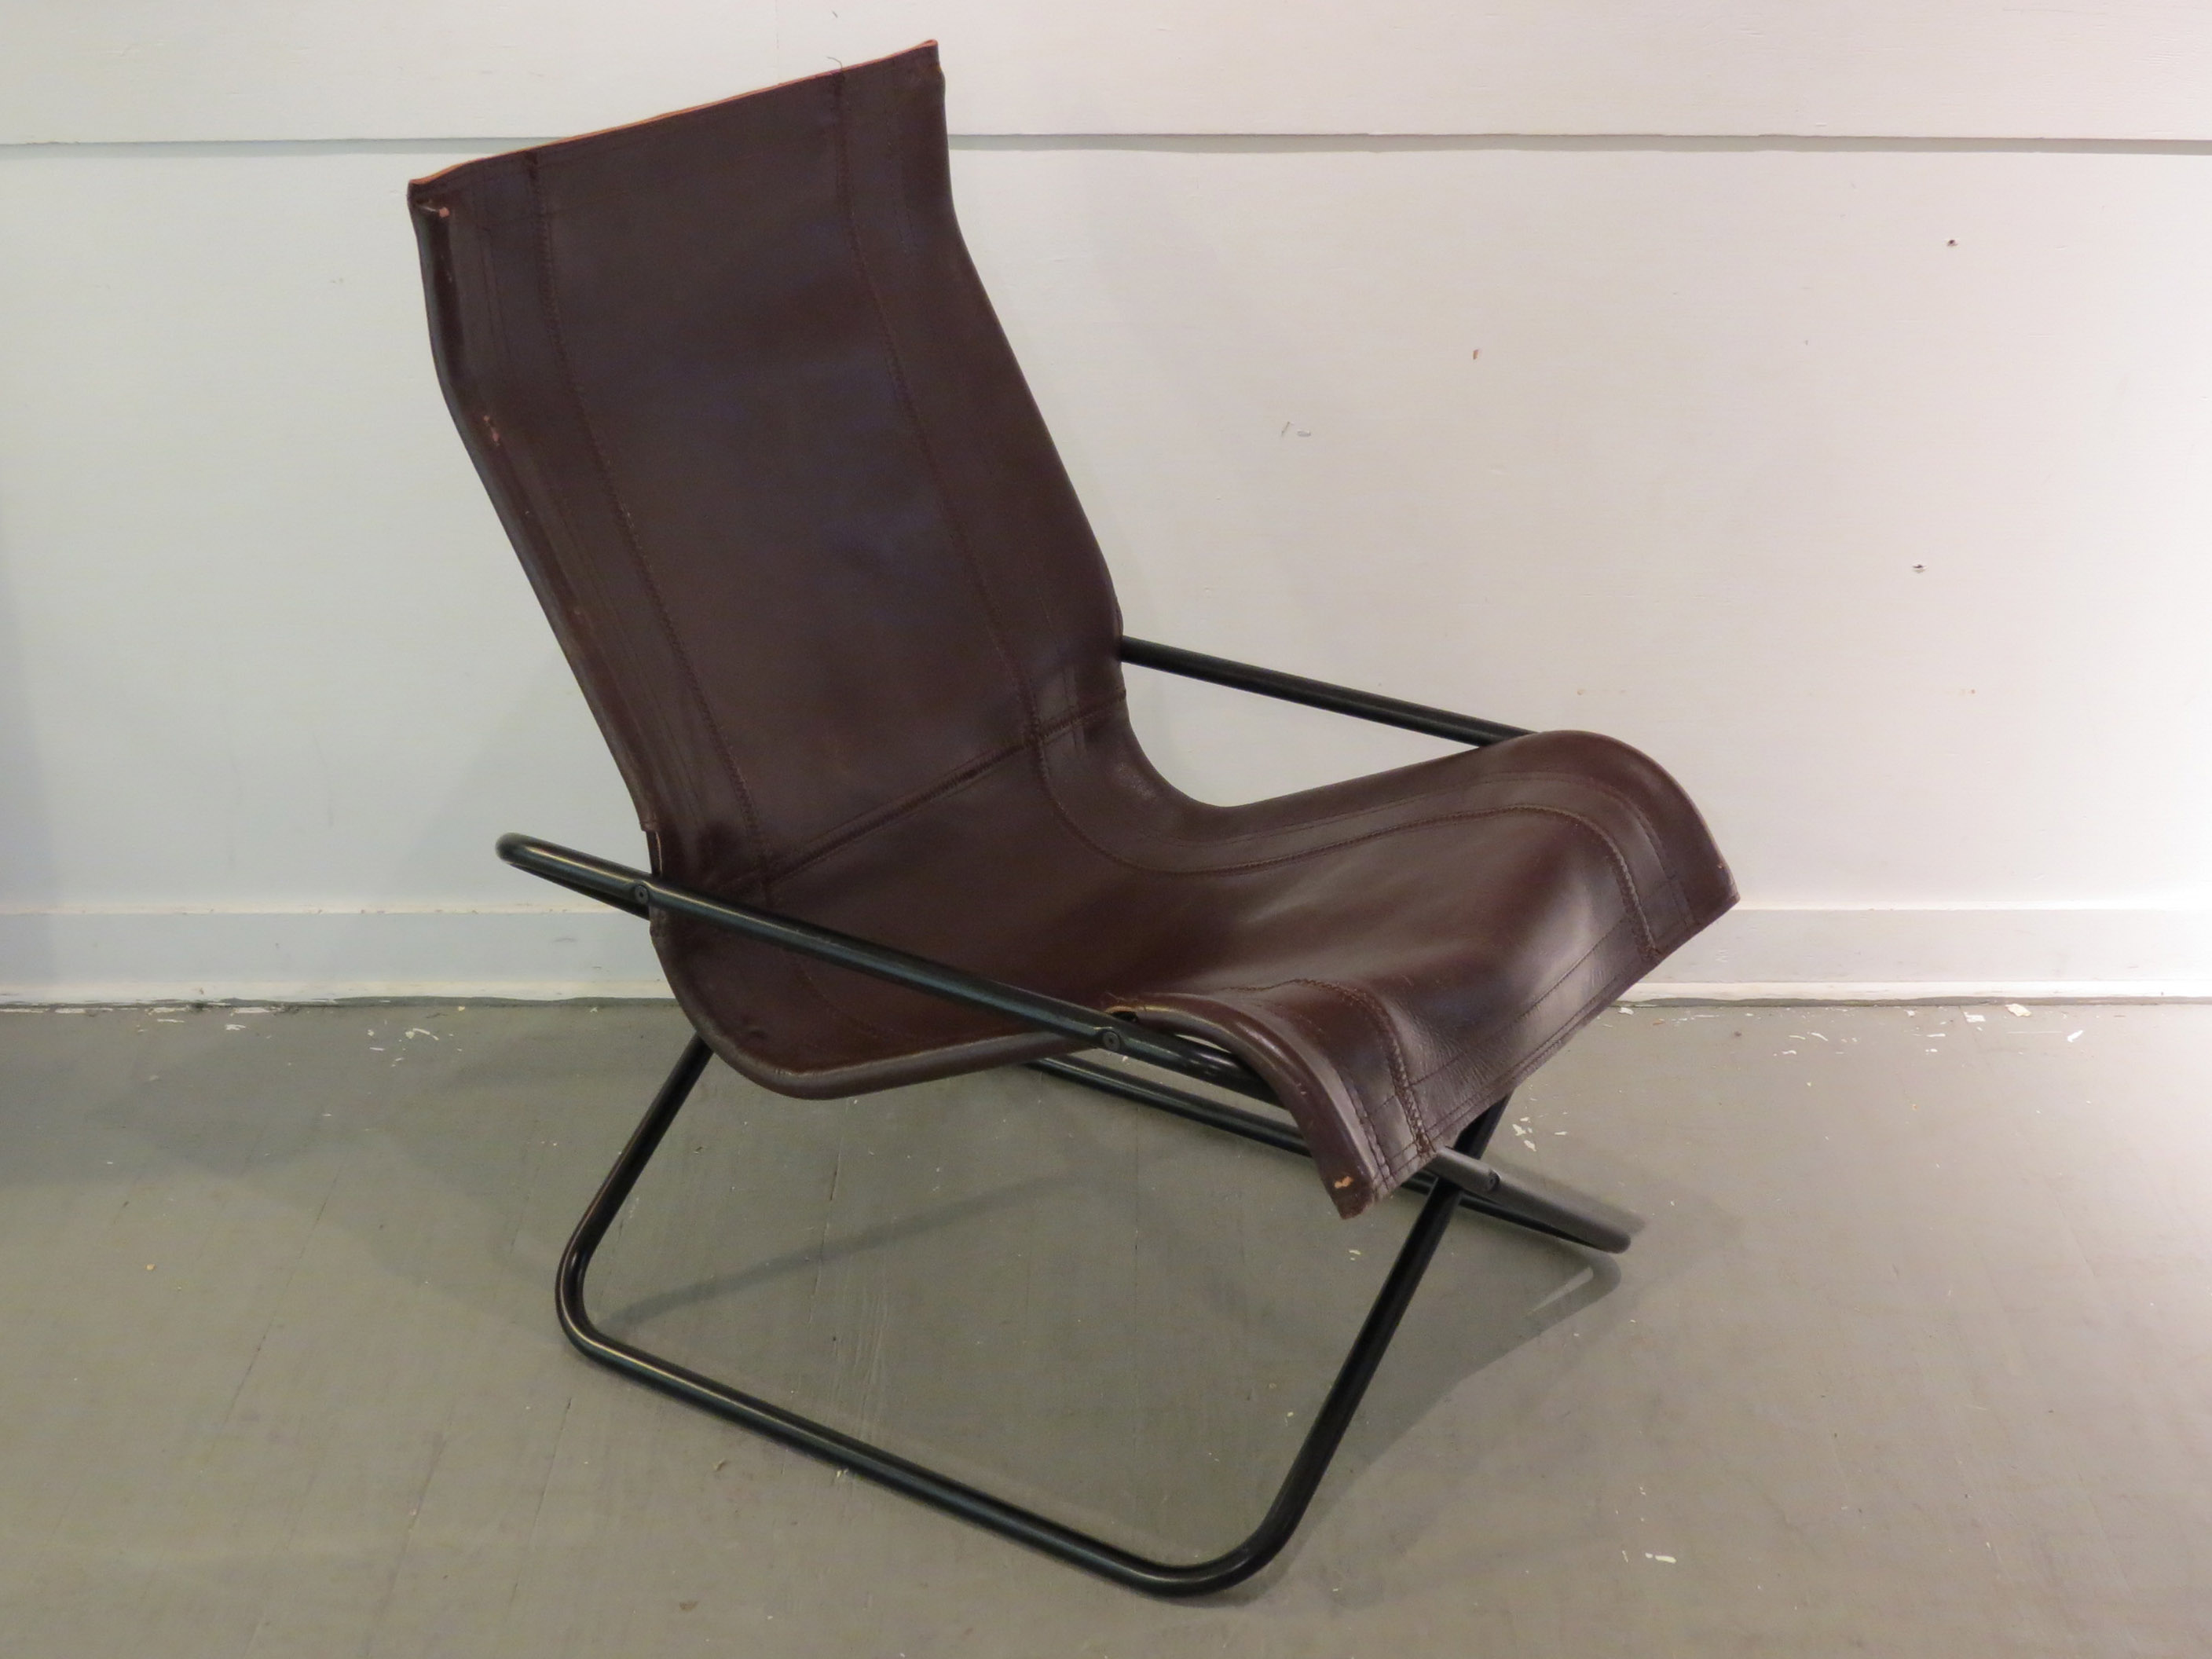 Etonnant Vintage MCM Uchida Leather Sling Chair   Image 2 Of 11